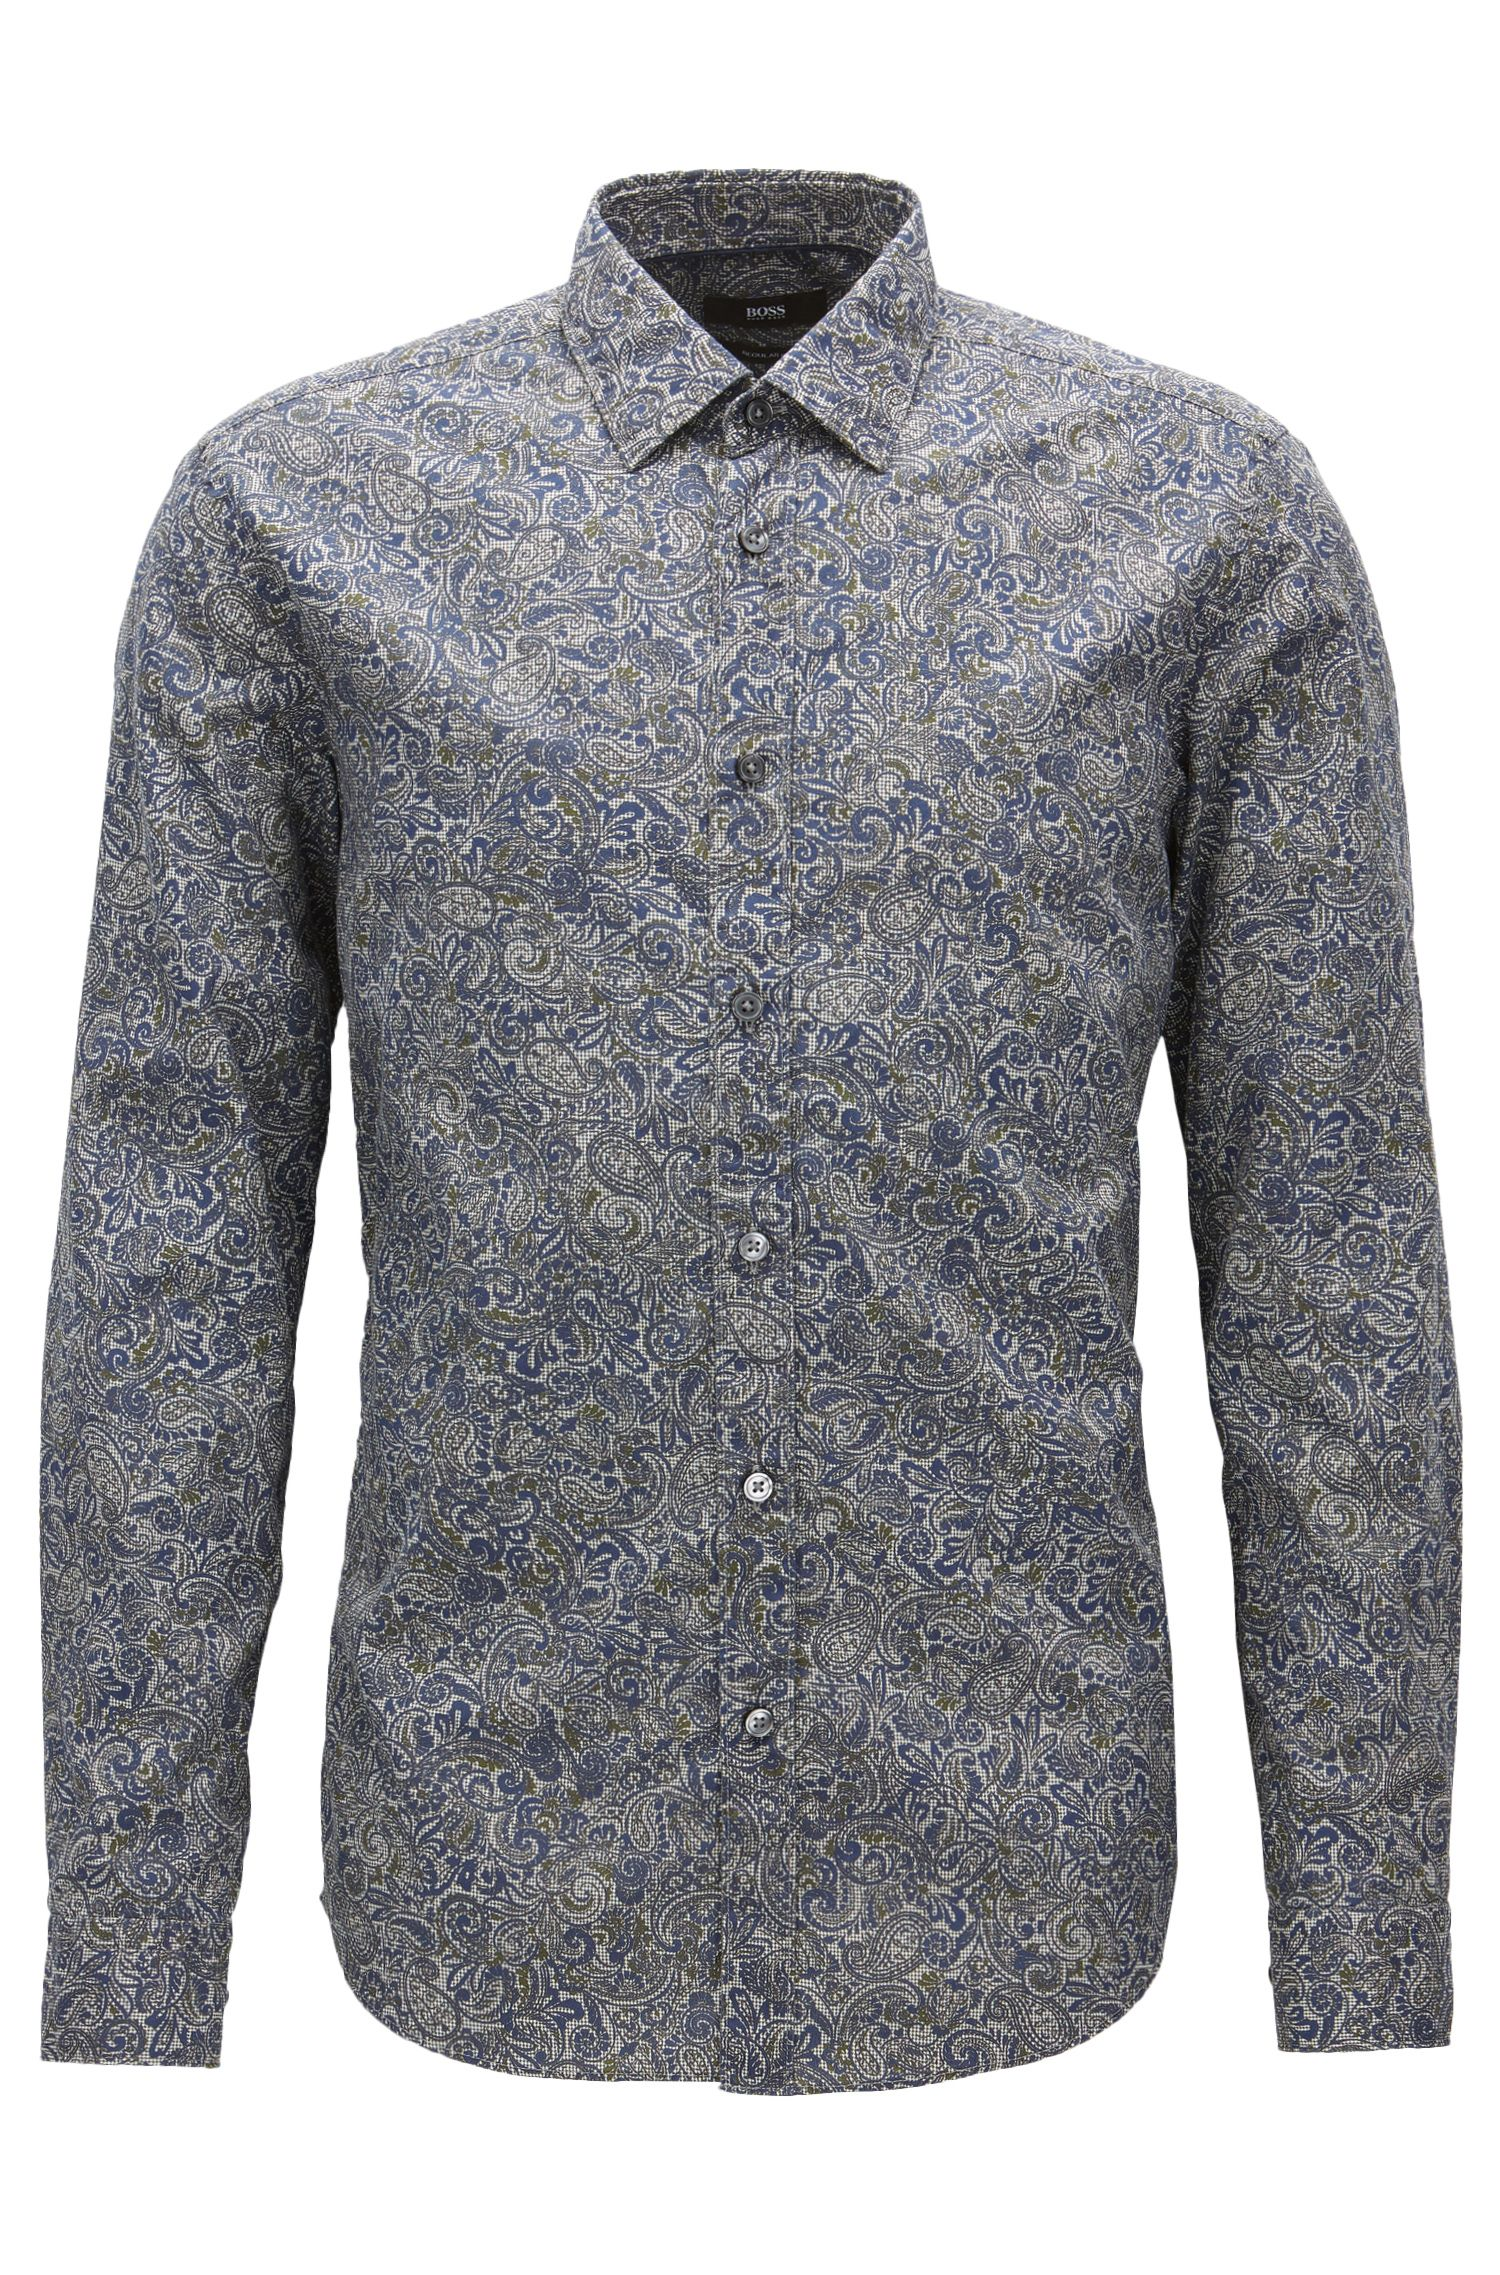 Paisley cotton shirt in a regular fit